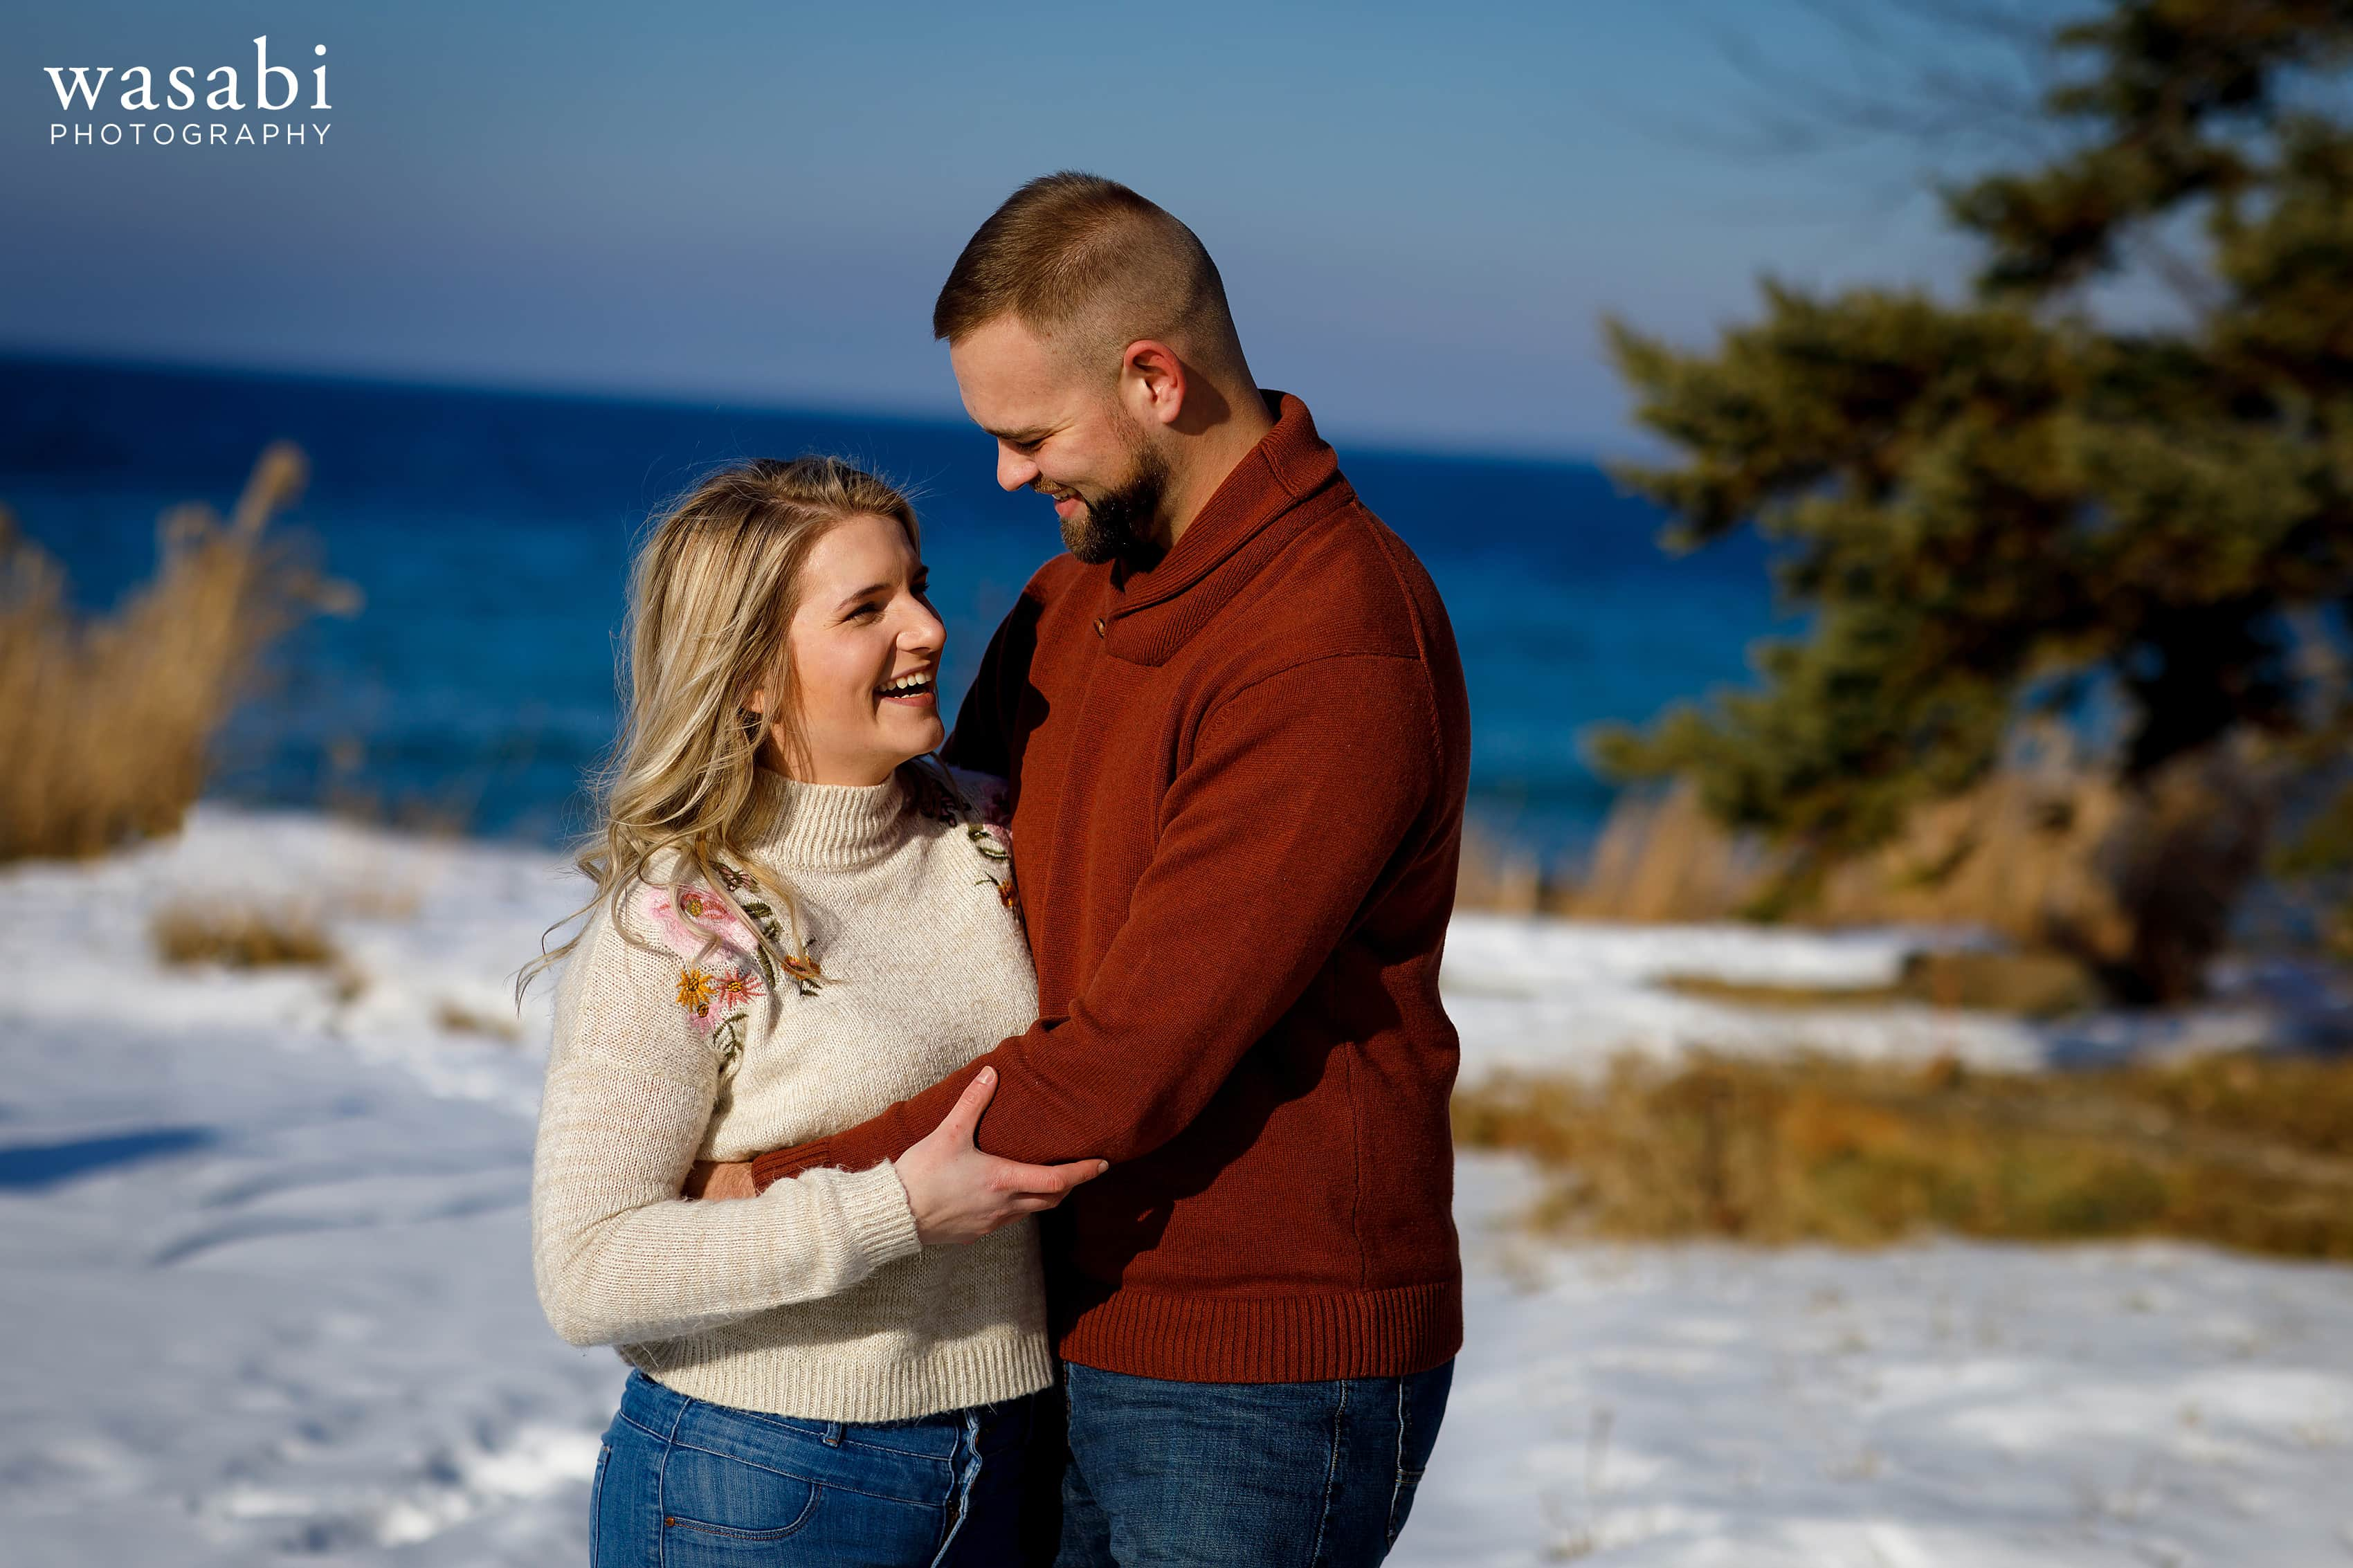 engaged couple poses for engagement photo during winter engagement session with Lake Michigan in the background